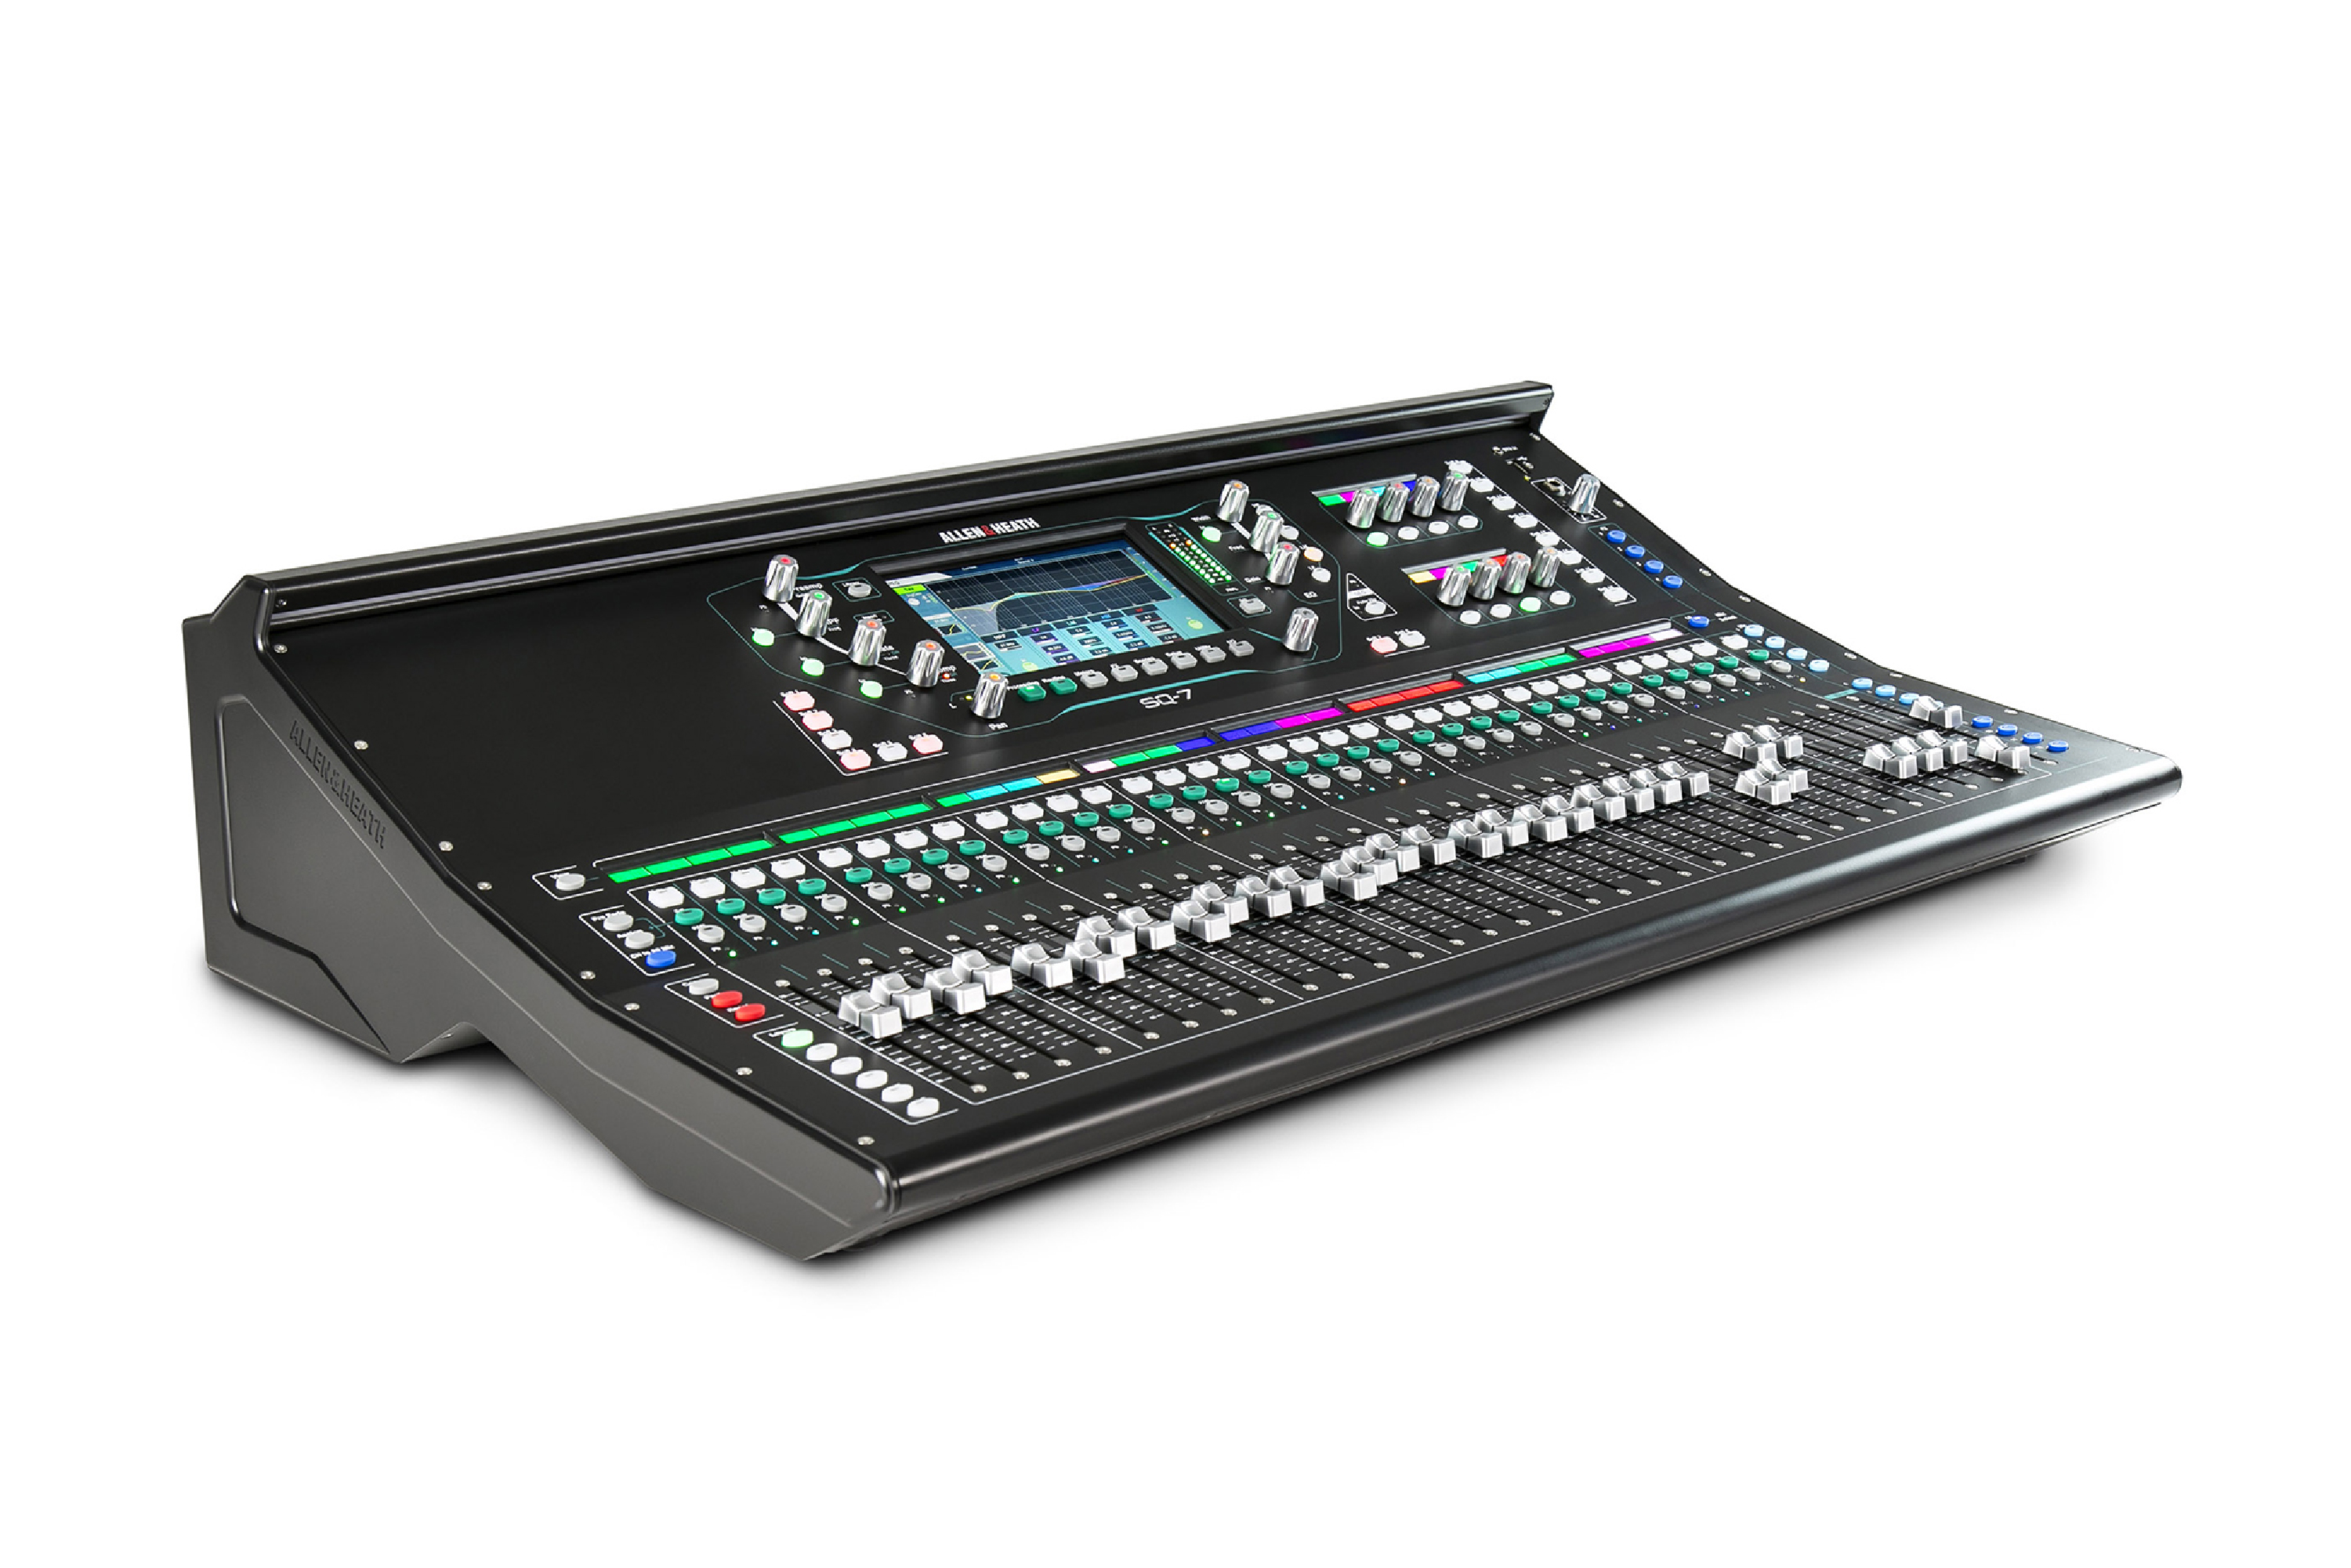 R&W Allen & Heath SQ-7 Digital mixer